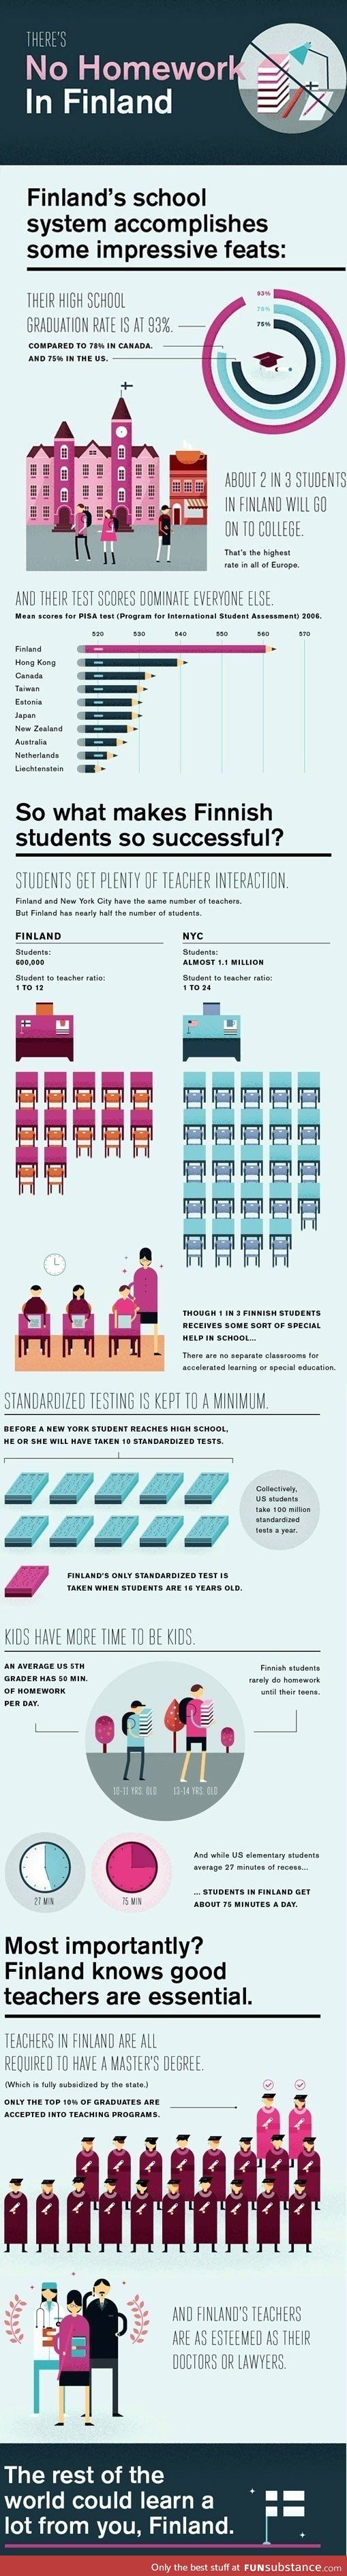 A working education system, that works for all, not just the elite minority.